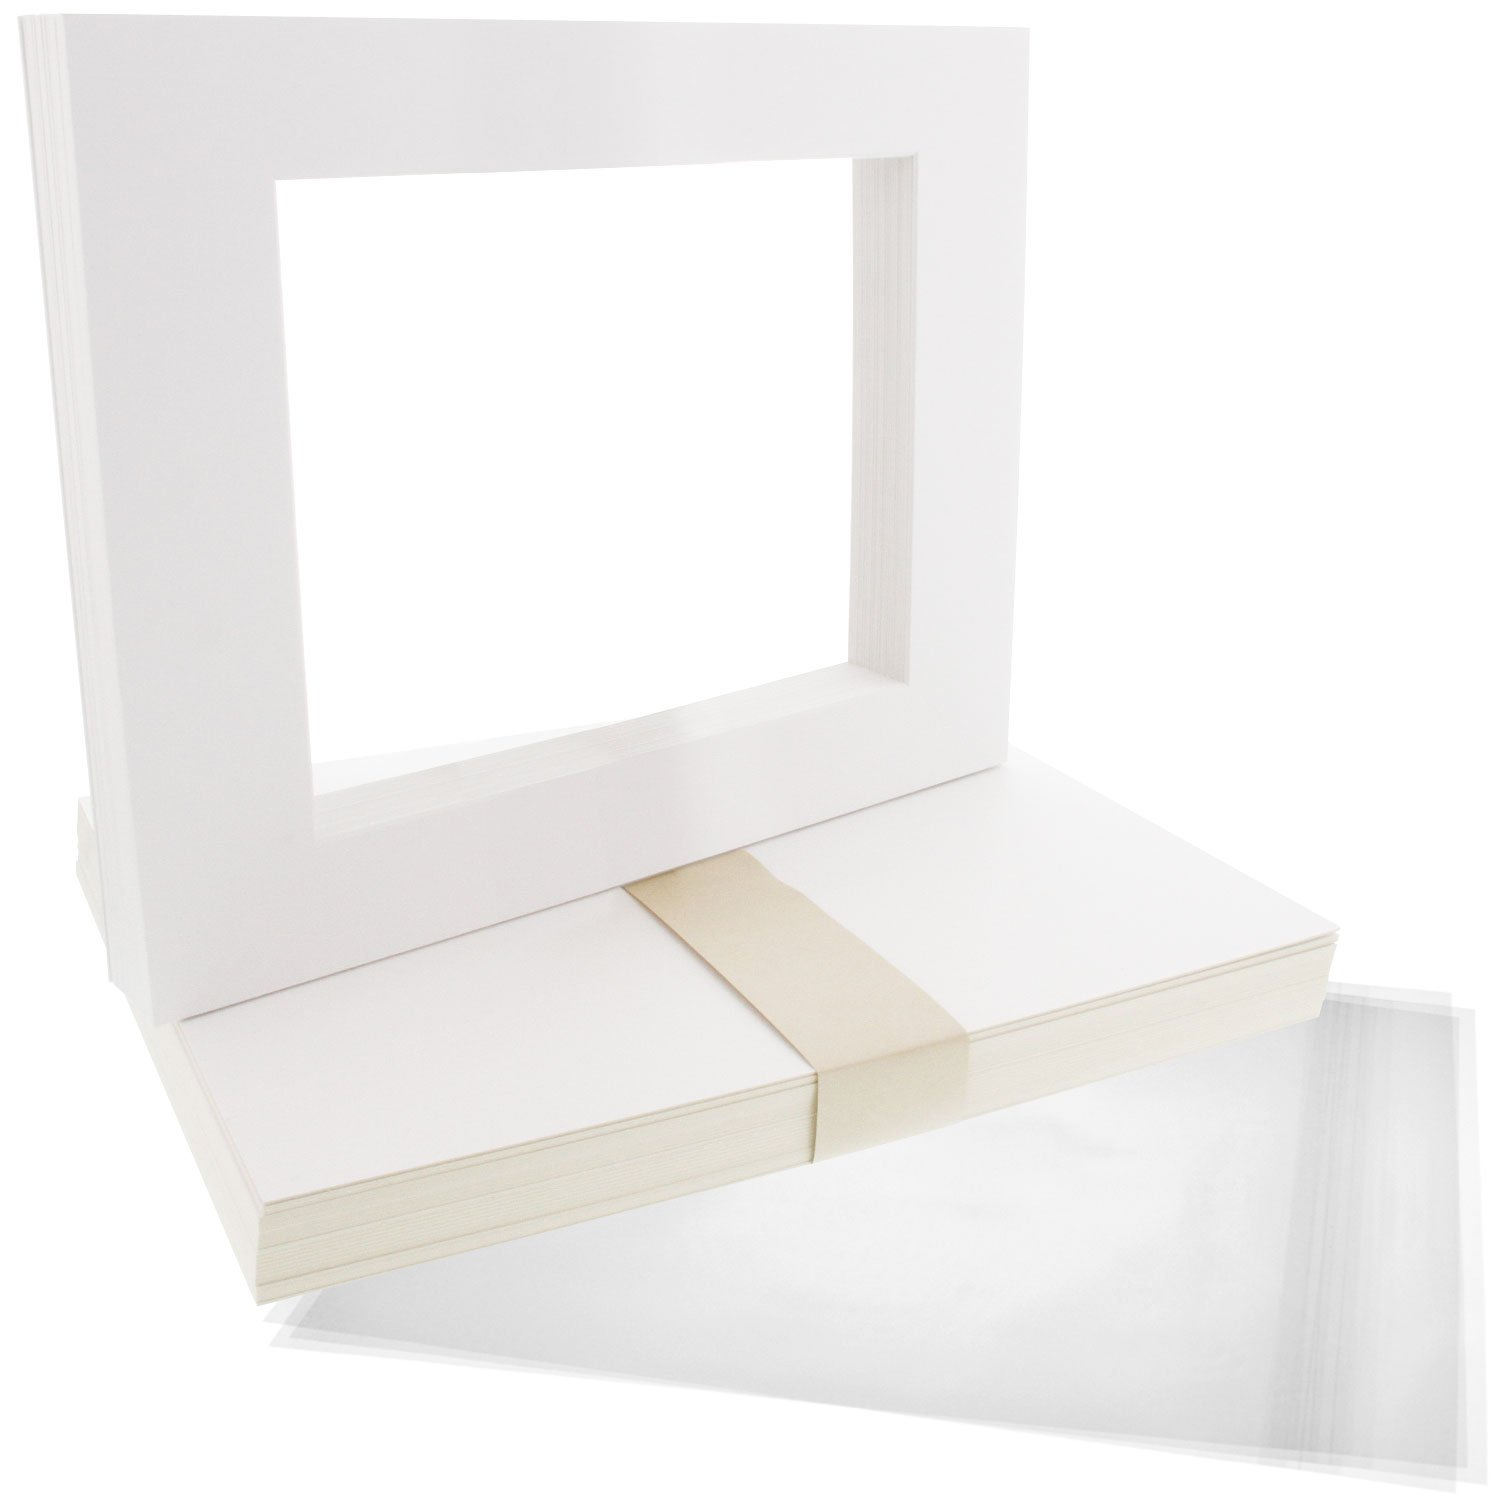 US Art Supply Art Mats Acid-Free Pre-Cut 8x10 White Picture Mat Matte Sets. Includes a Pack of 25 White Core Bevel Cut Mattes for 5x7 Photos, Pack of 25 Backers & 25 Clear Sleeve Bags USA W08X10-MATSET-25